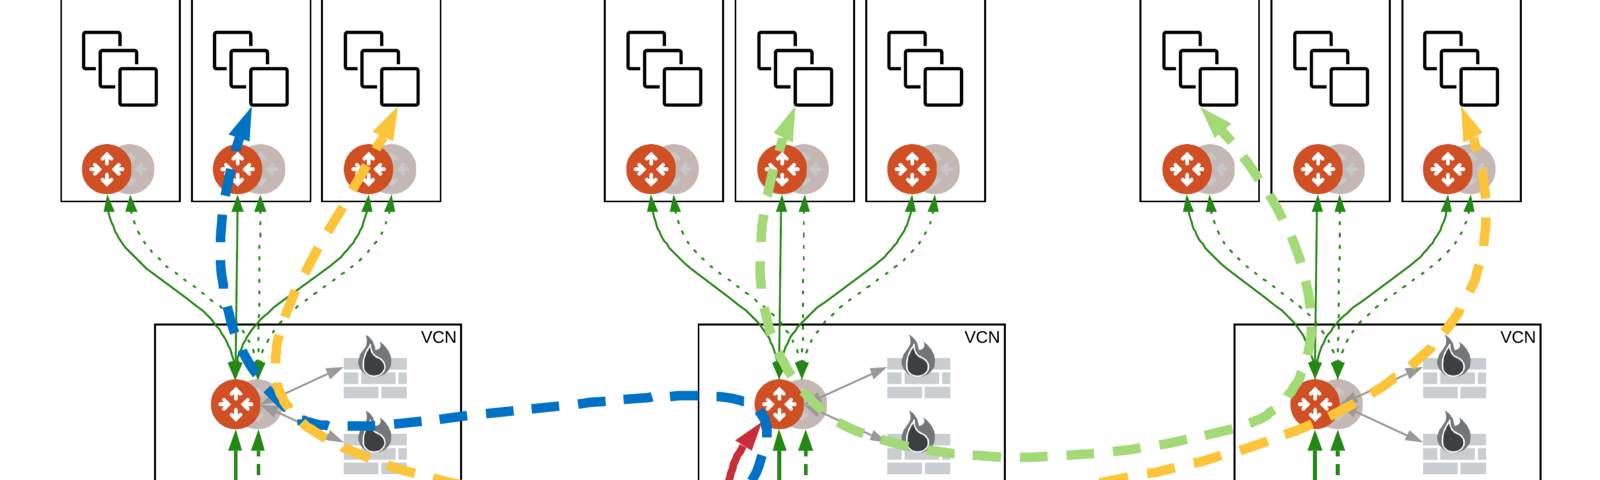 Interconnecting multiple regions in OCI